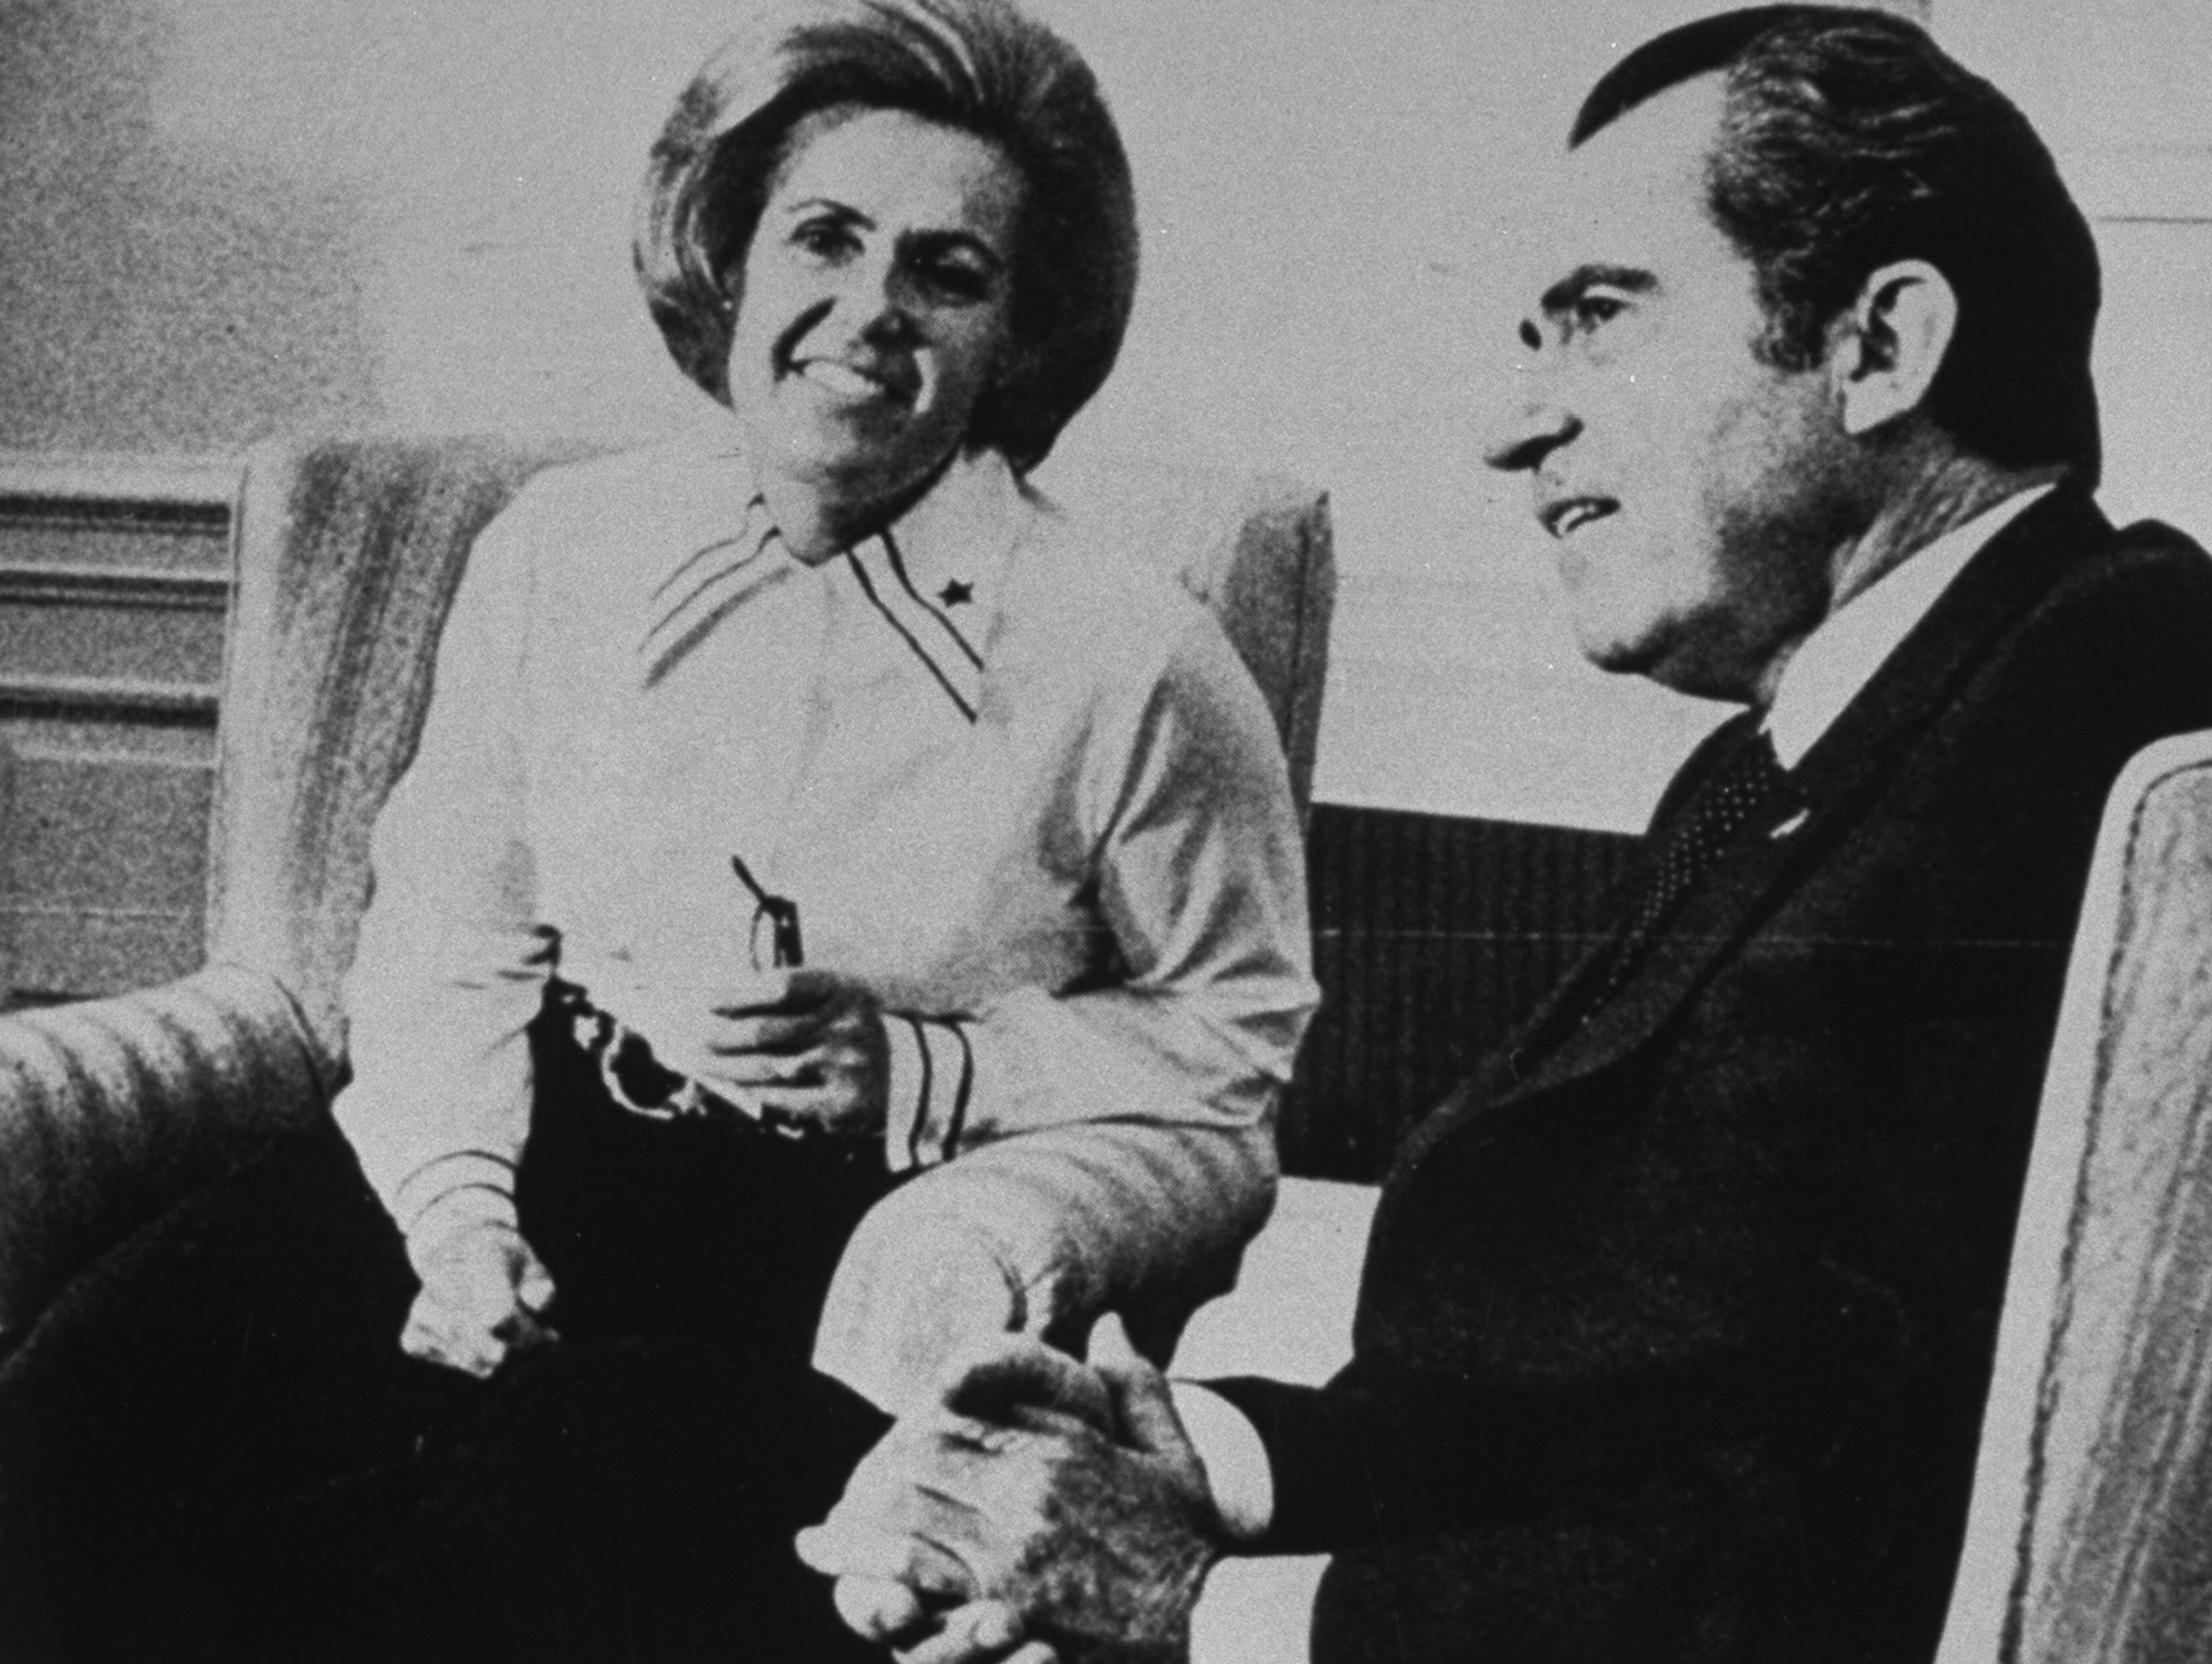 Photo of Sybil, wife of James Bond Stockdale, founder of National League of Families of American Prisoners and Missing in Southeast Asia, w. Richard Nixon in the late 1960s.